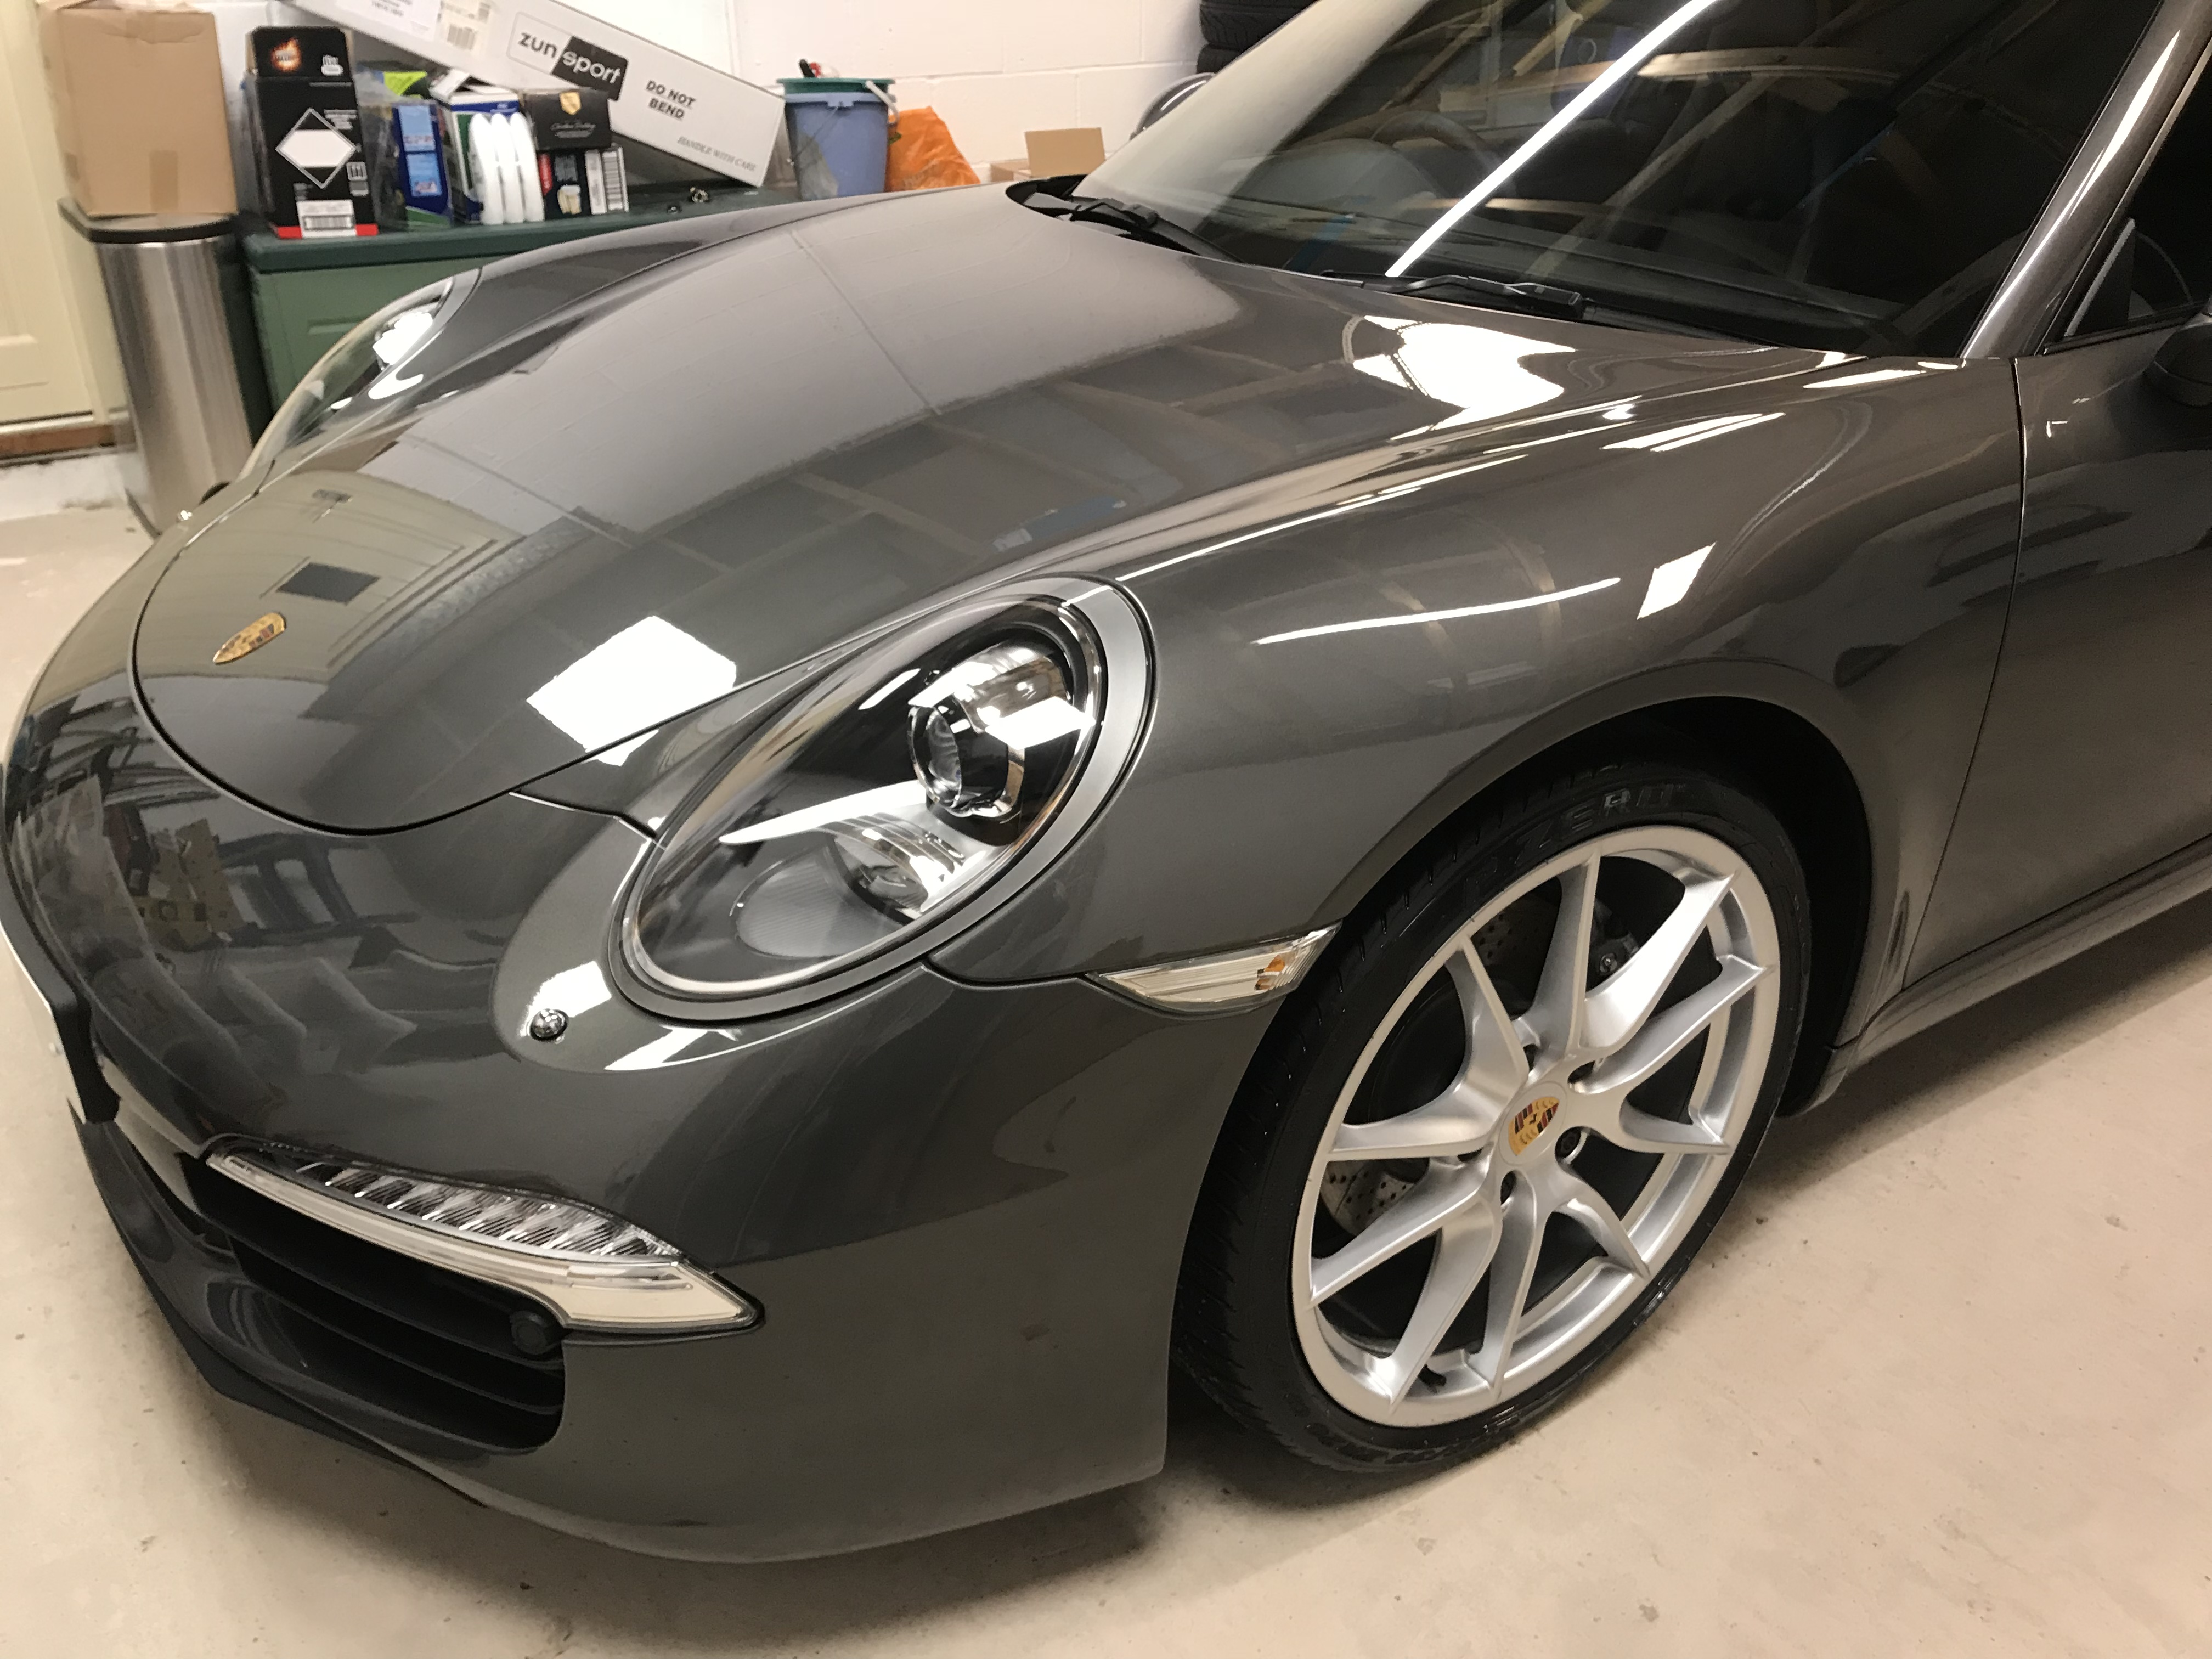 New Car Protection Package carried out on Porsche 911